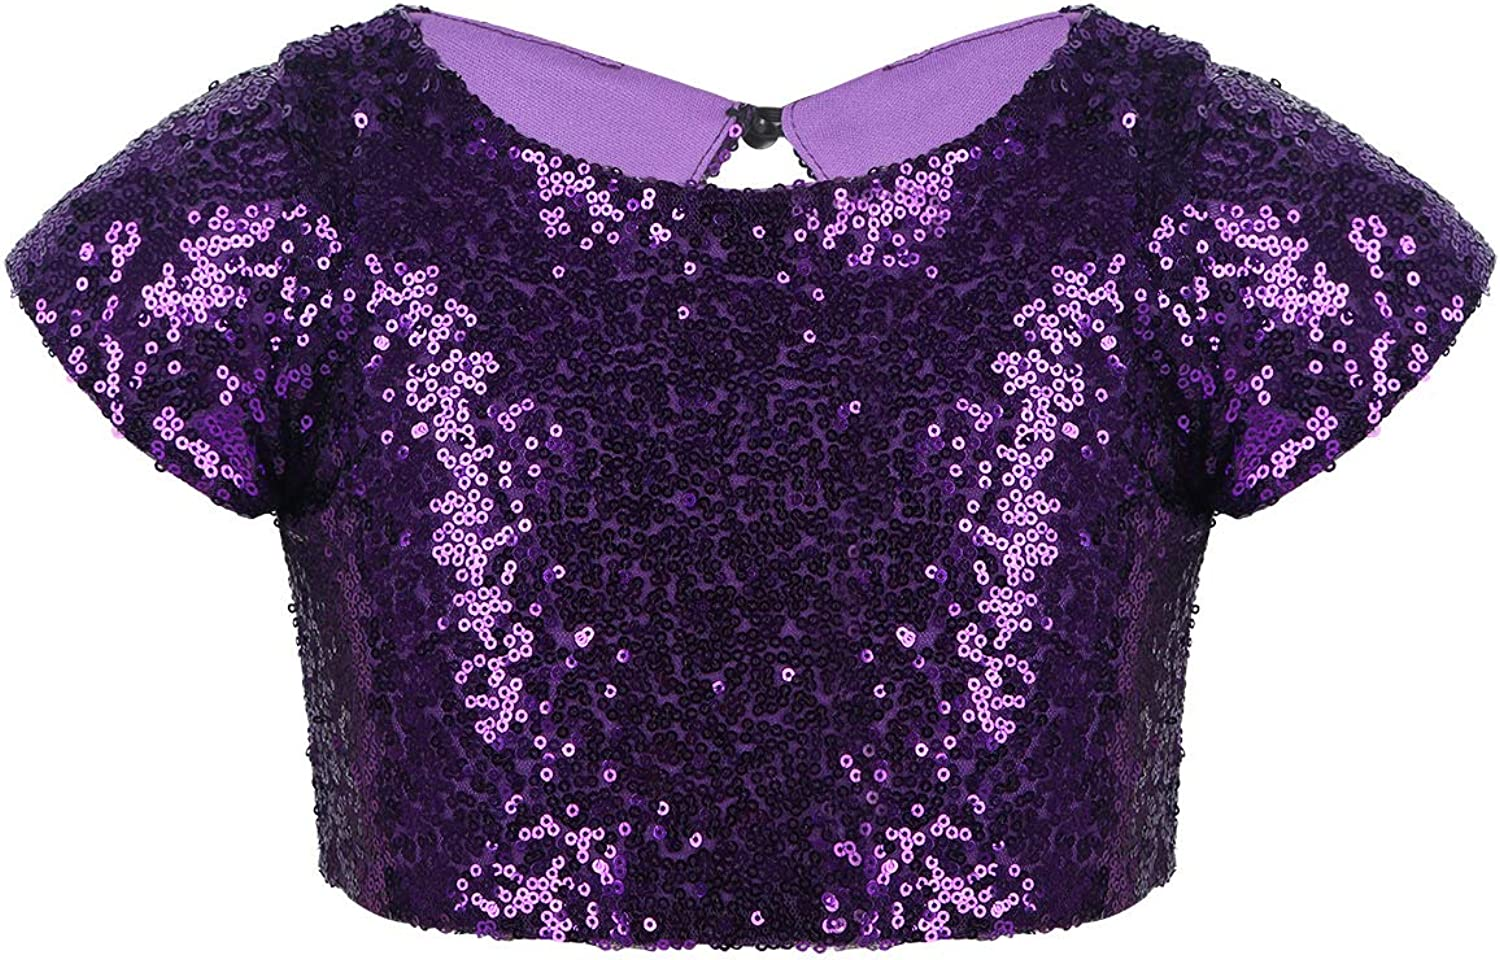 TiaoBug Kids Girls Sparkly Sequined Tan Glitter Sleeves Tops Cap 35% OFF trend rank